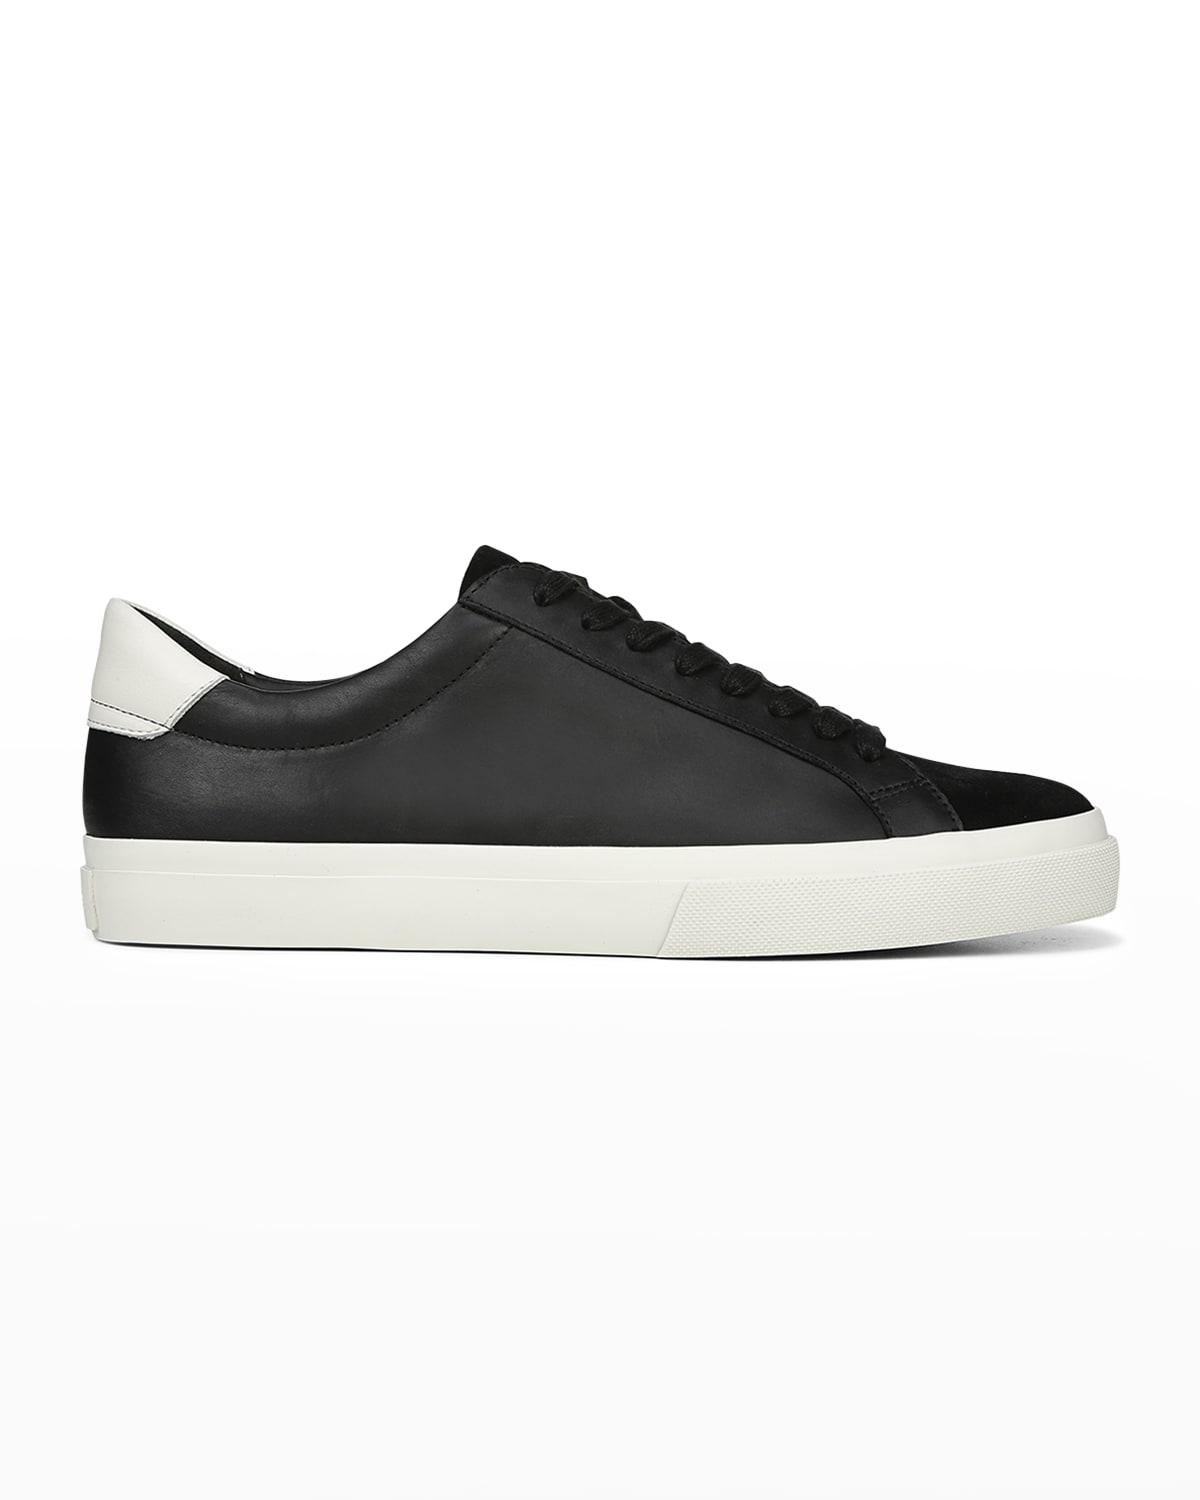 Men's Fulton Leather and Suede Low-Top Sneakers